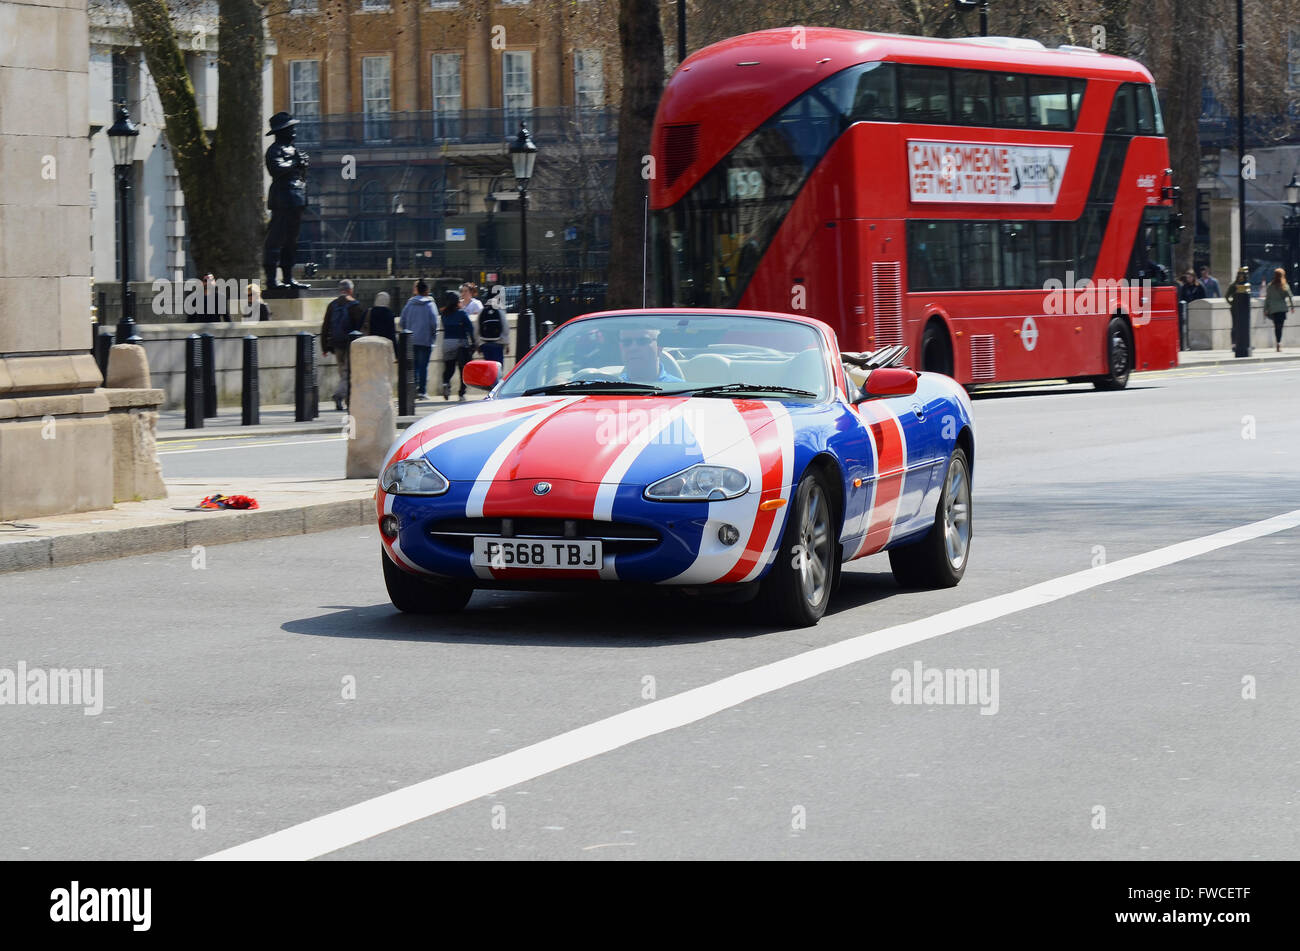 an-open-top-jaguar-xk8-in-union-flag-colour-scheme-driving-through-FWCETF.jpg